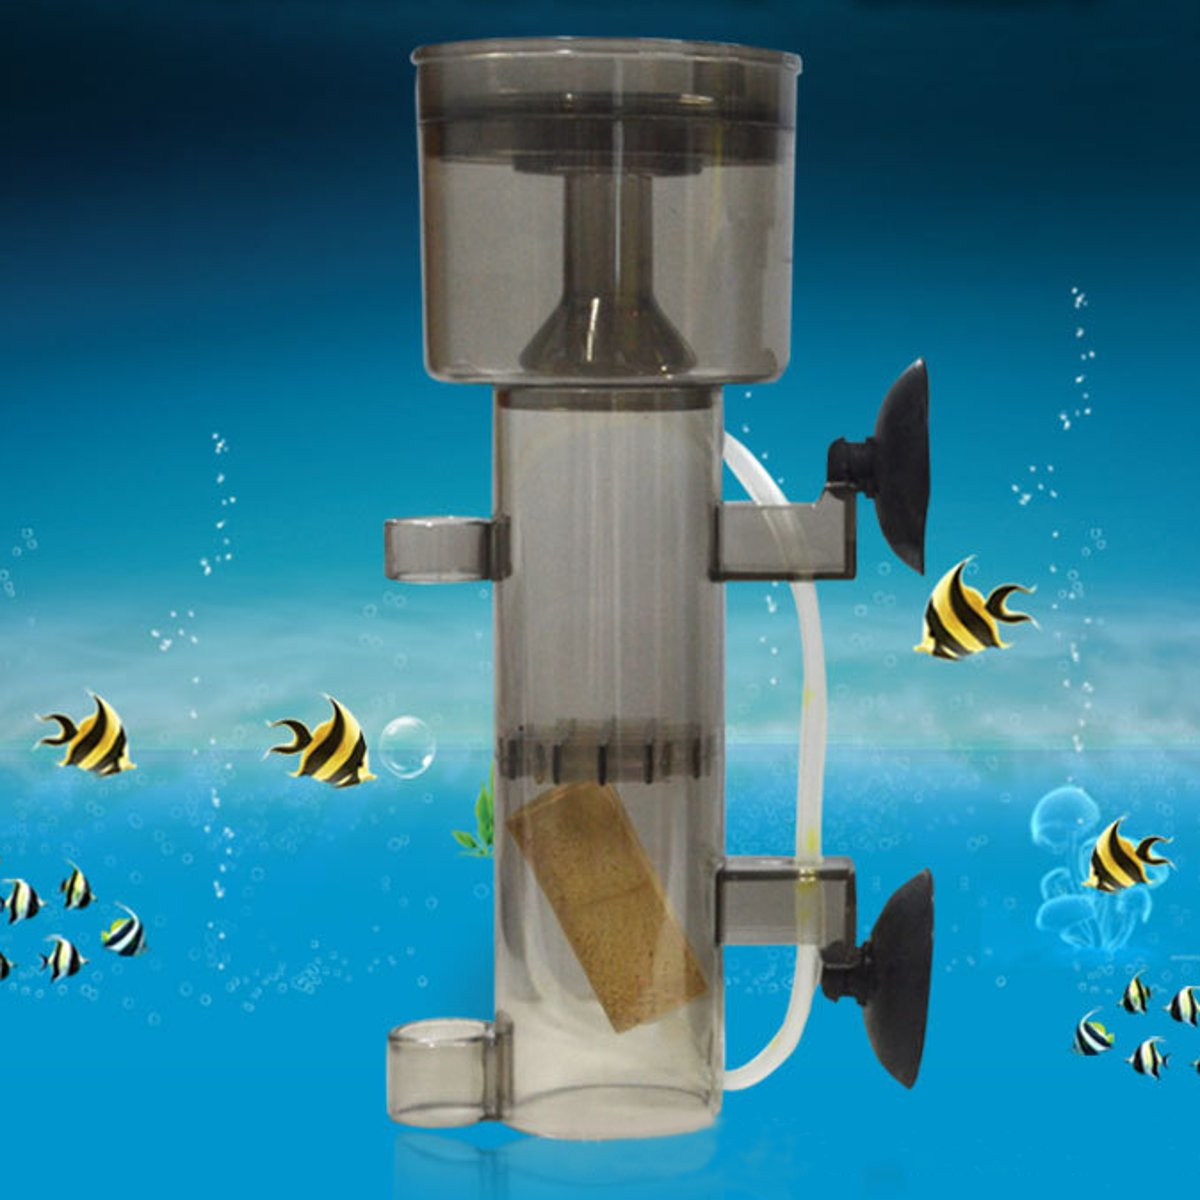 Moaere 600/800 L/H Mini Aquarium Fish Tank Air Driven Protein Skimmer with Suction Cup